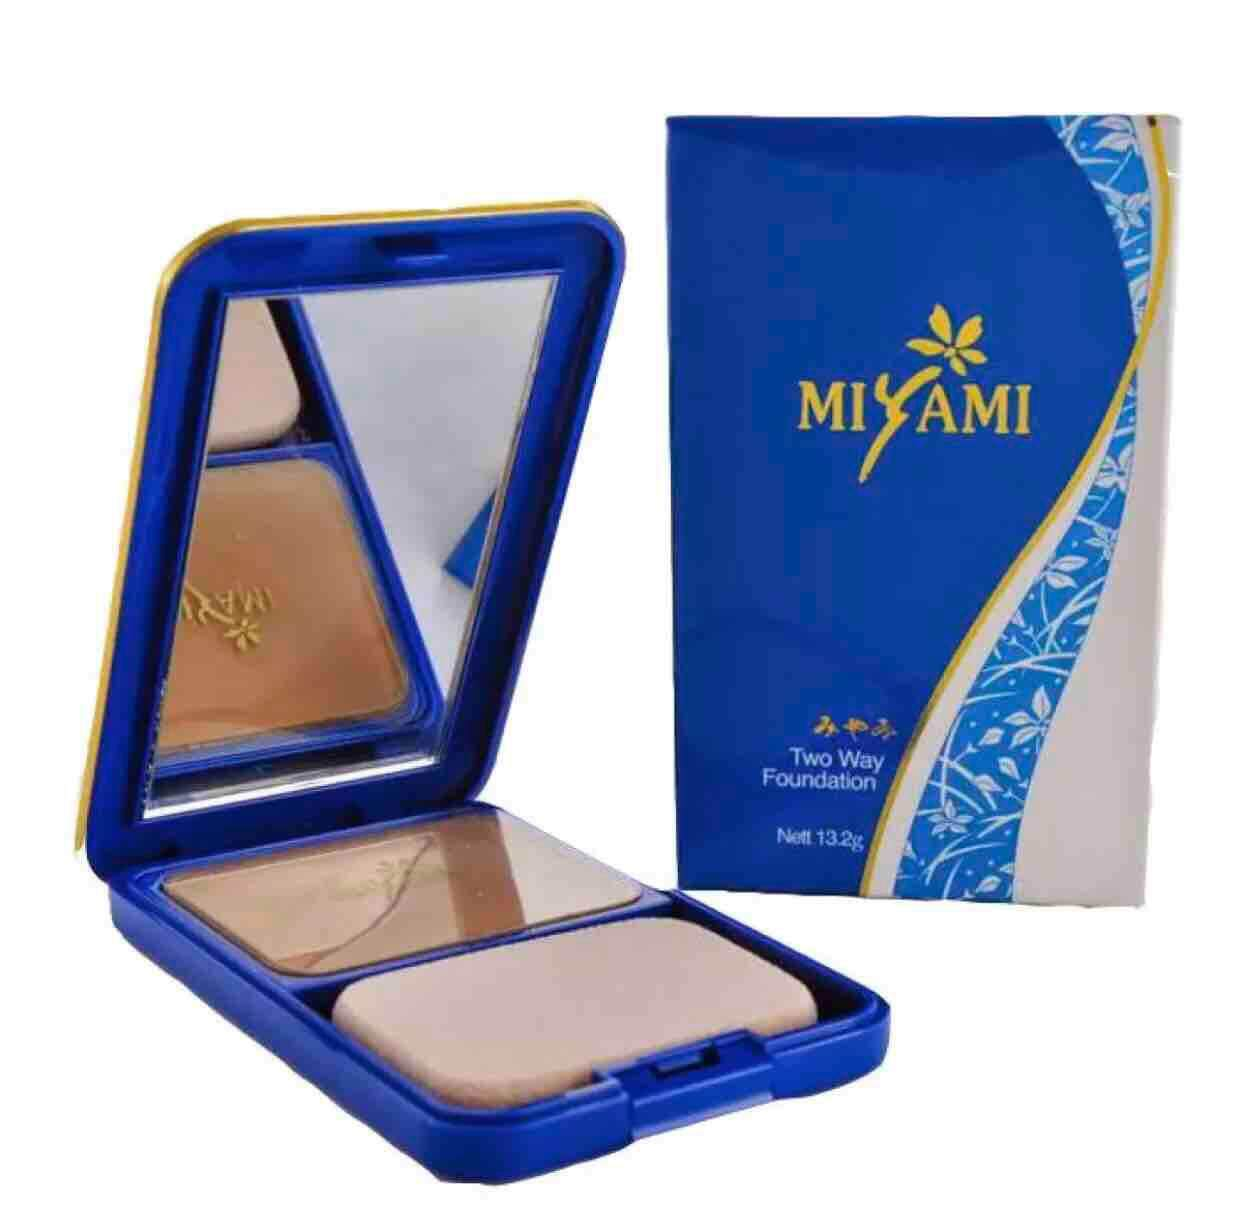 MIYAMI COMPACT POWDER LIGHT AND MEDIUM + FREE GIFT